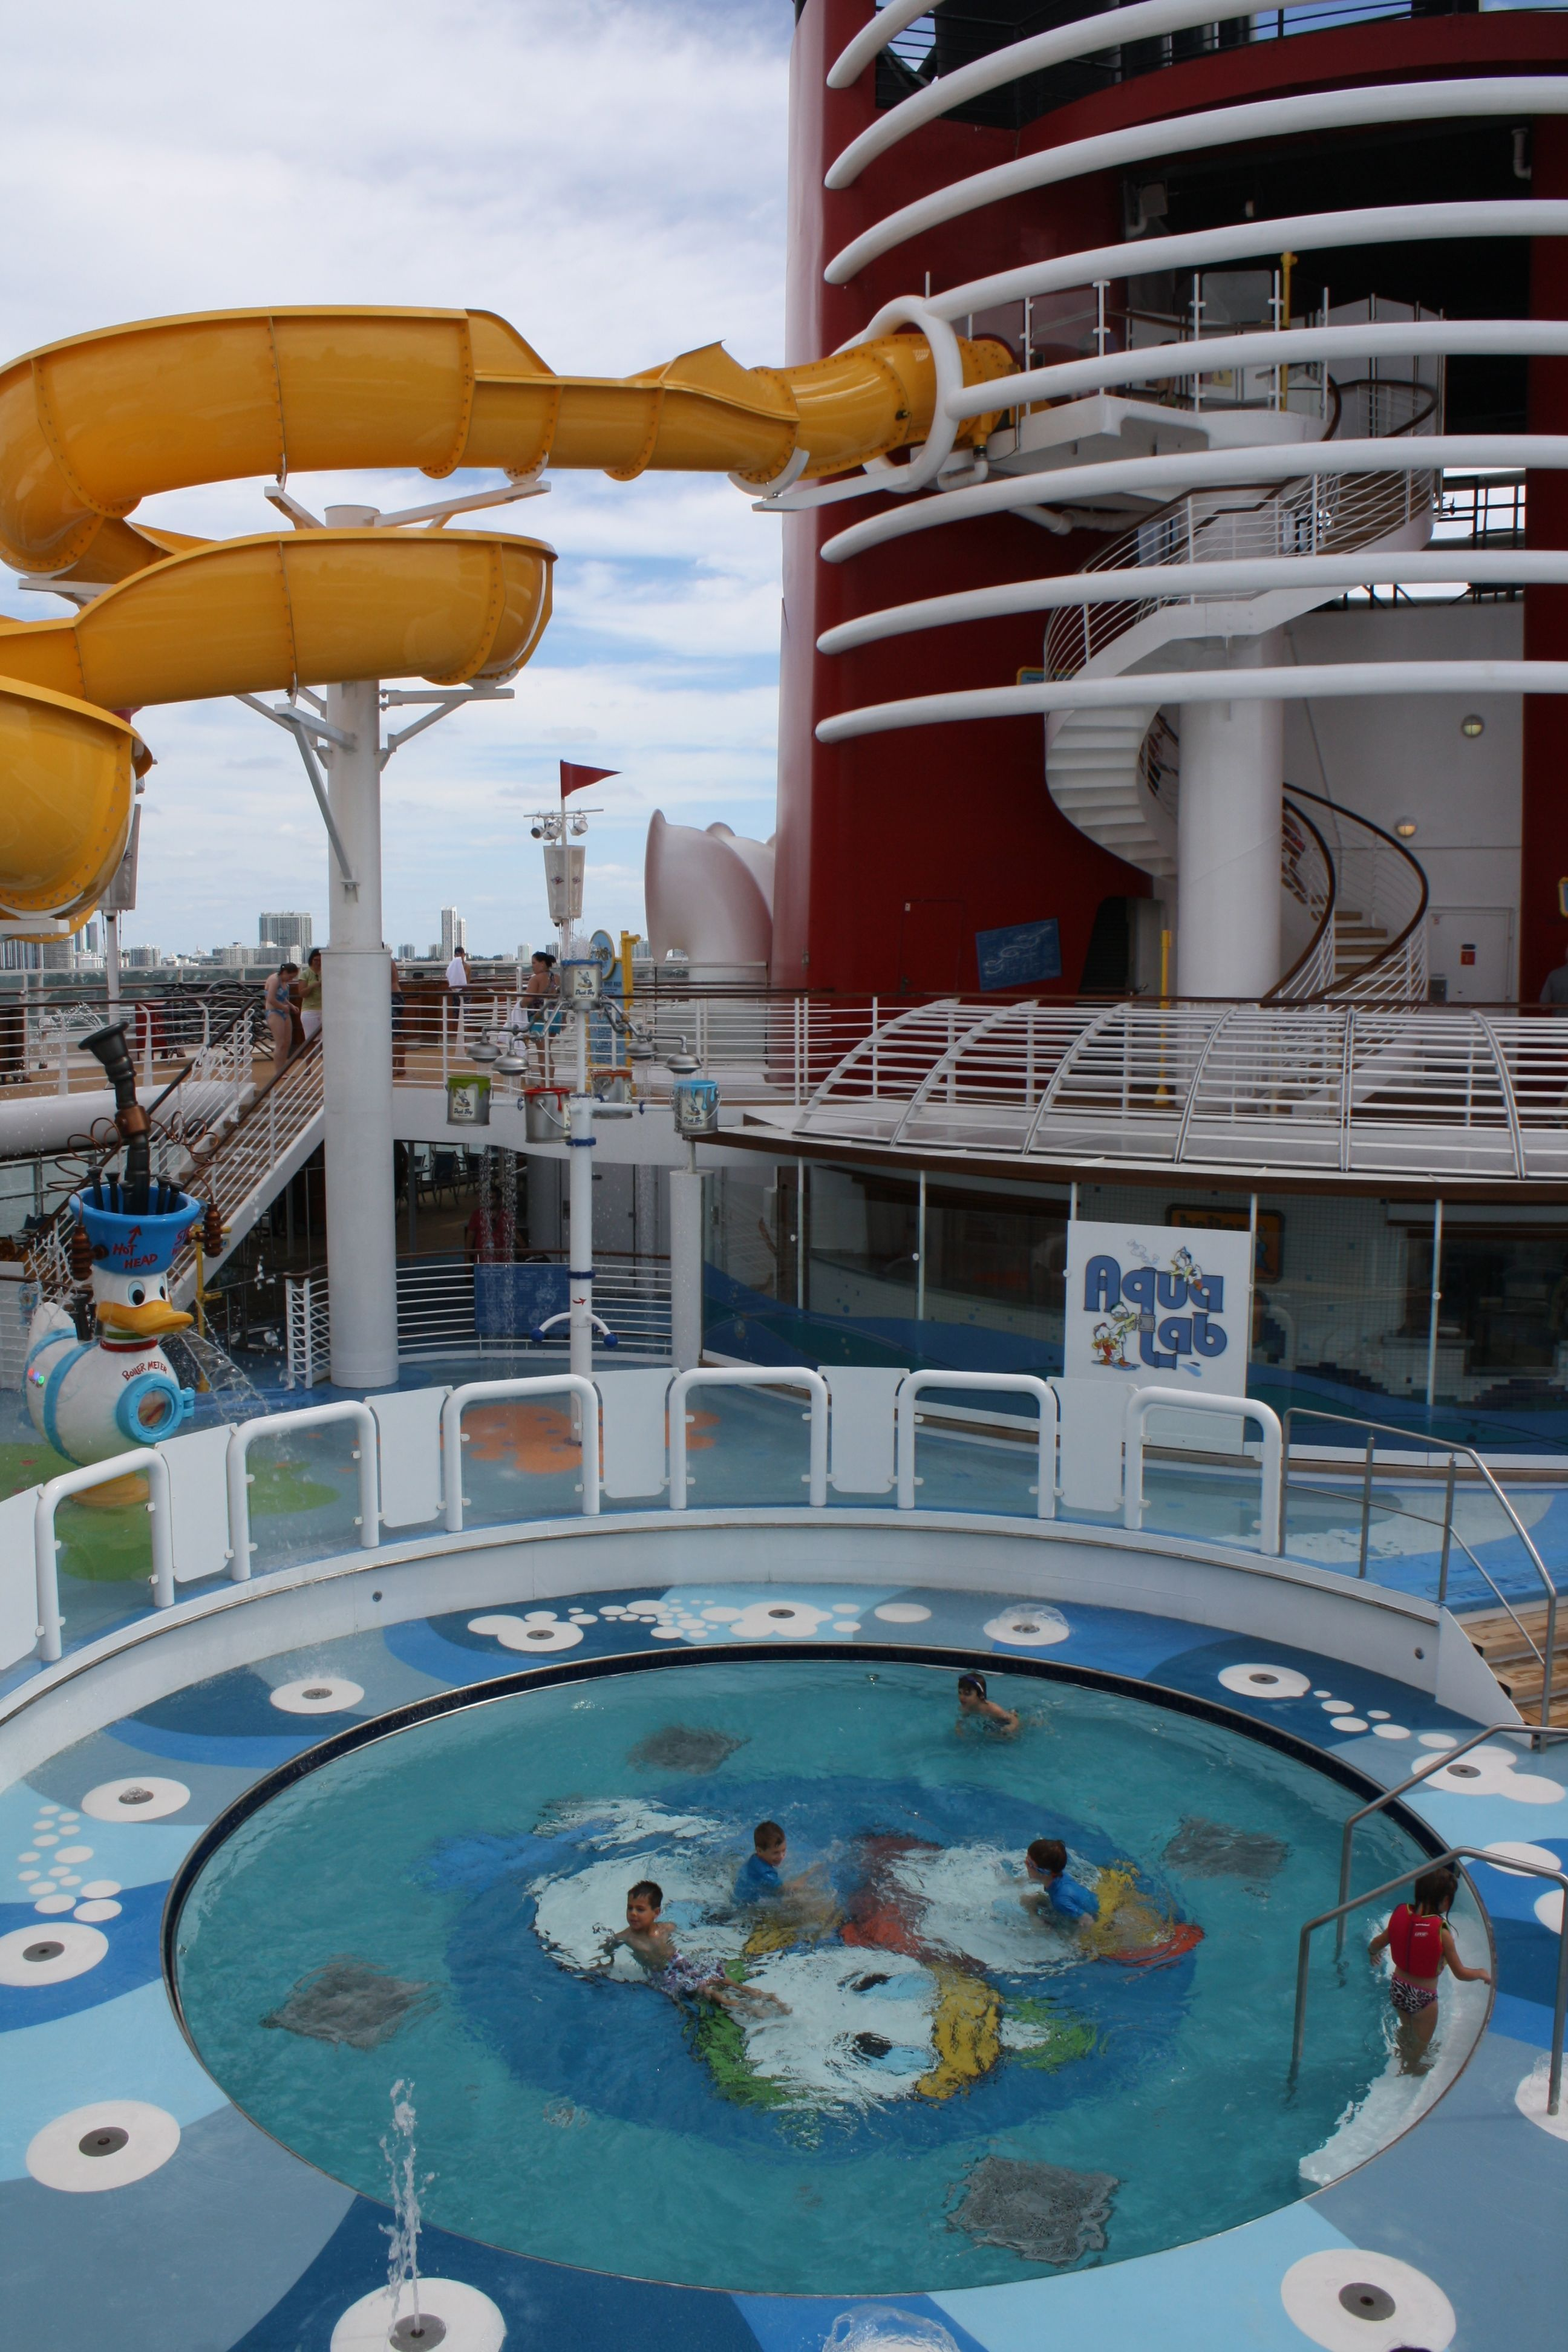 Pool Areas Aboard The Disney Magic Cruise Ship: Kids Pool Area On The Disney Magic